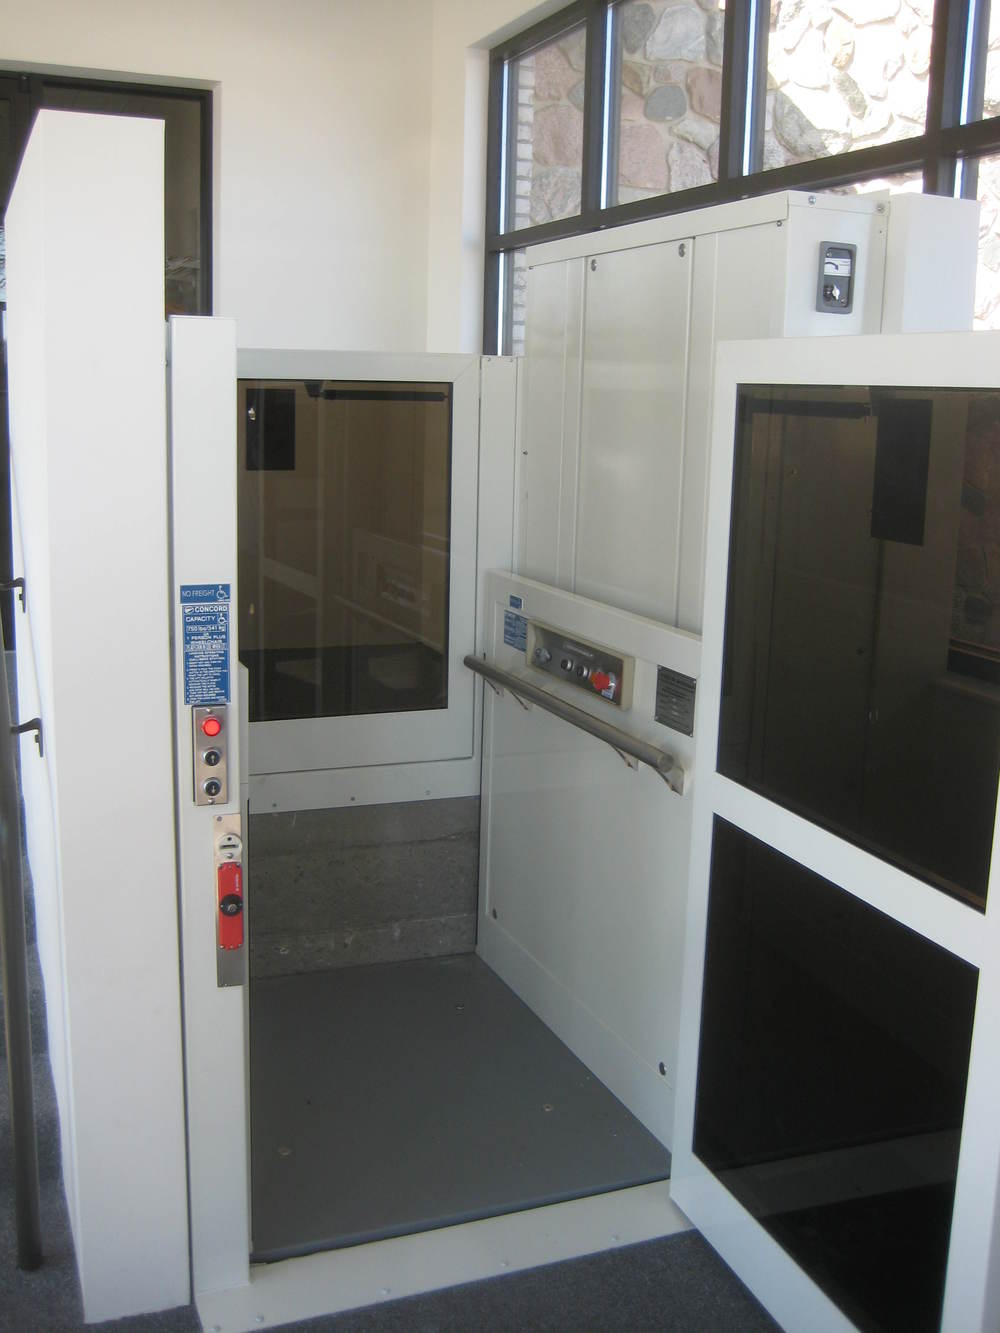 Commercial wheelchair lifts are intended for all public and private professional buildings including schools, universities, office buildings, ...